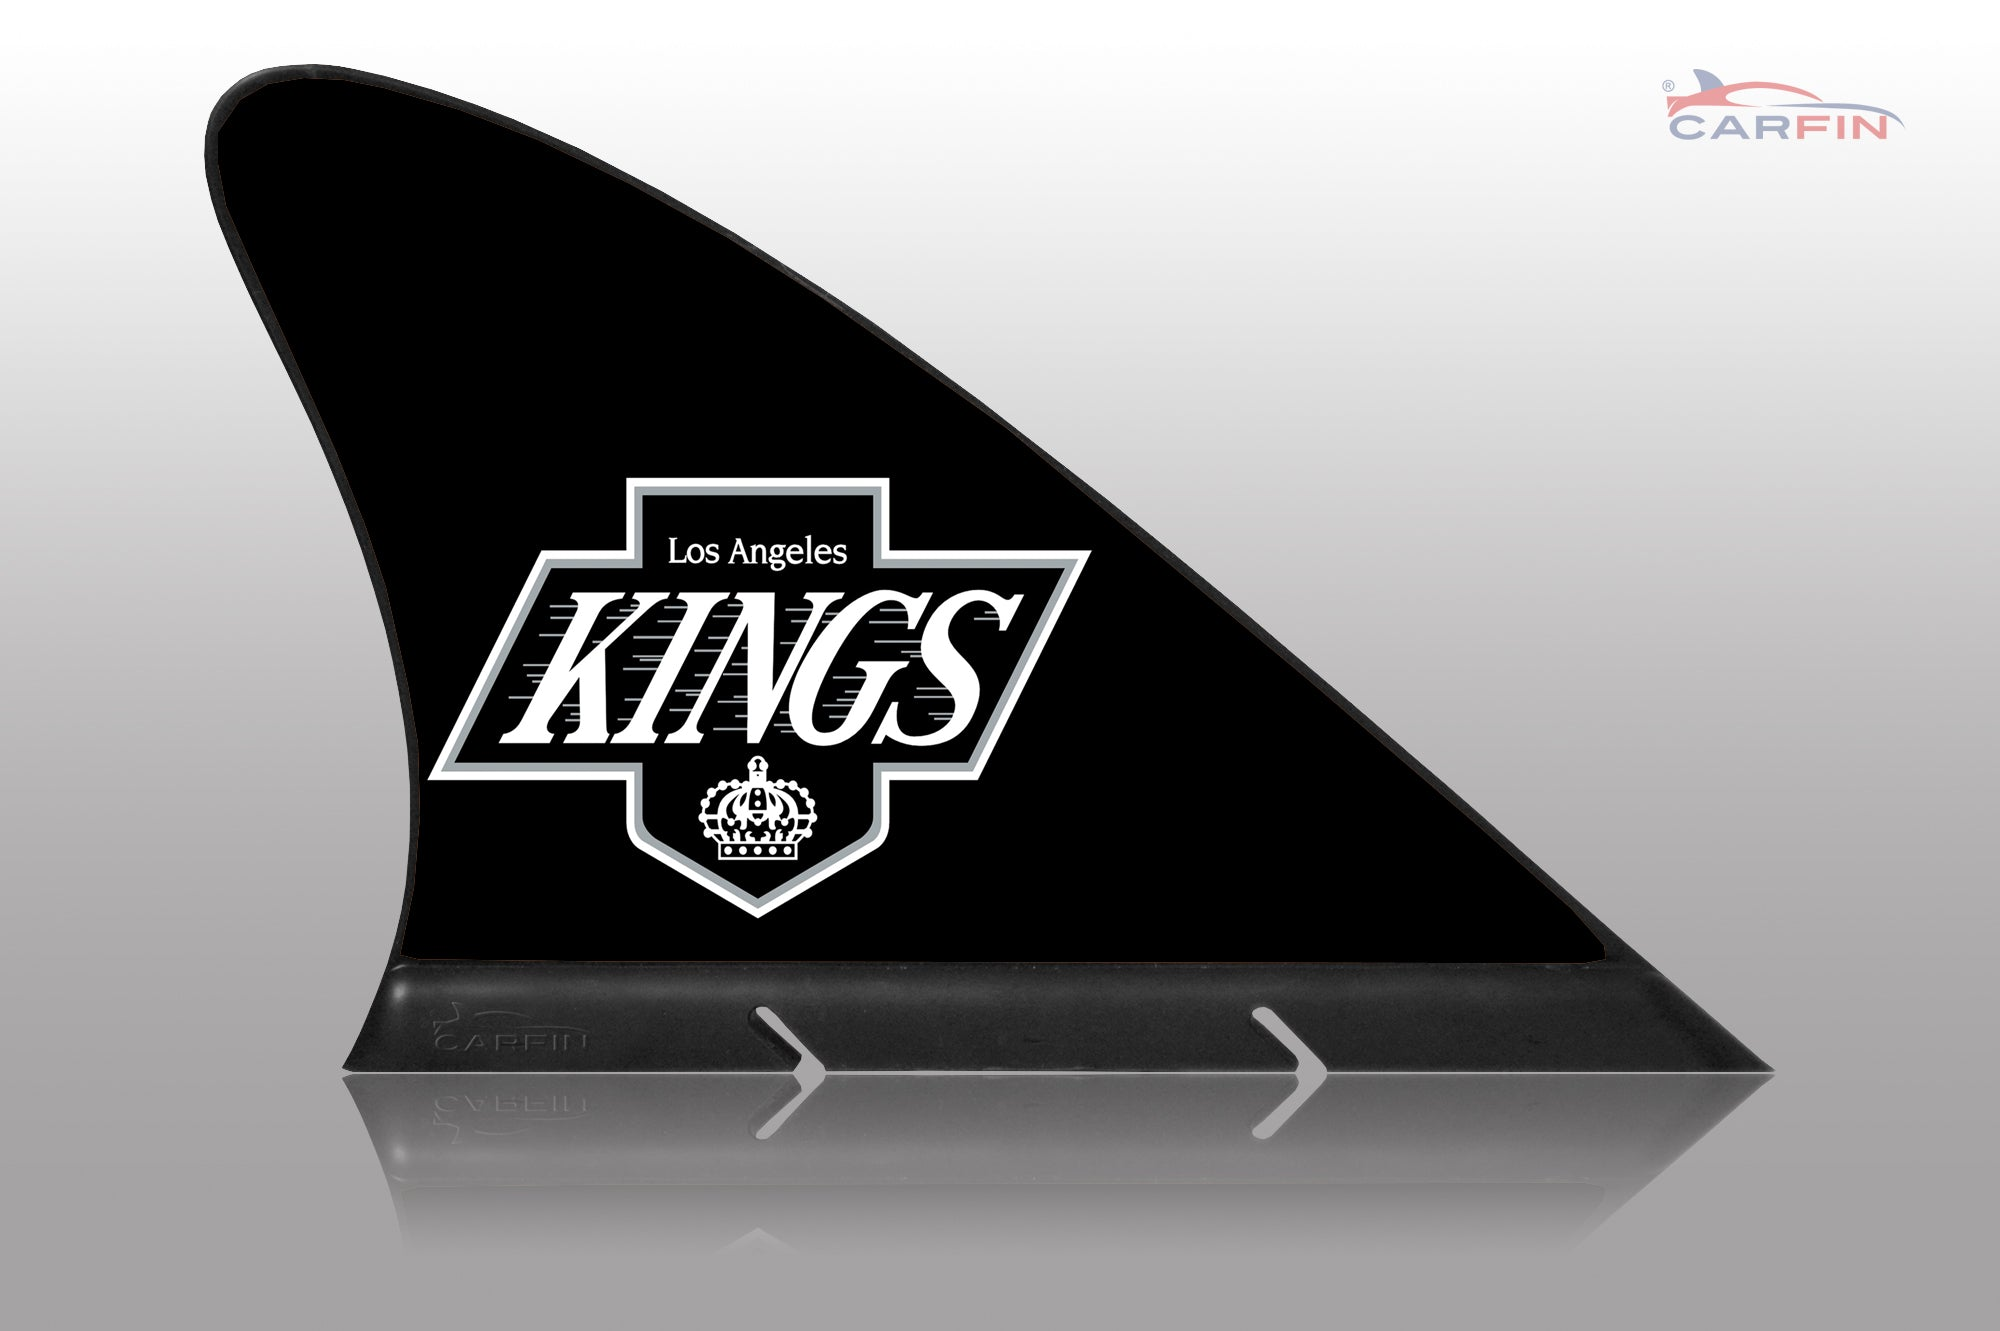 Los Angeles Kings Car Flag, CARFIN  Magnetic Car Flag. - Carfin